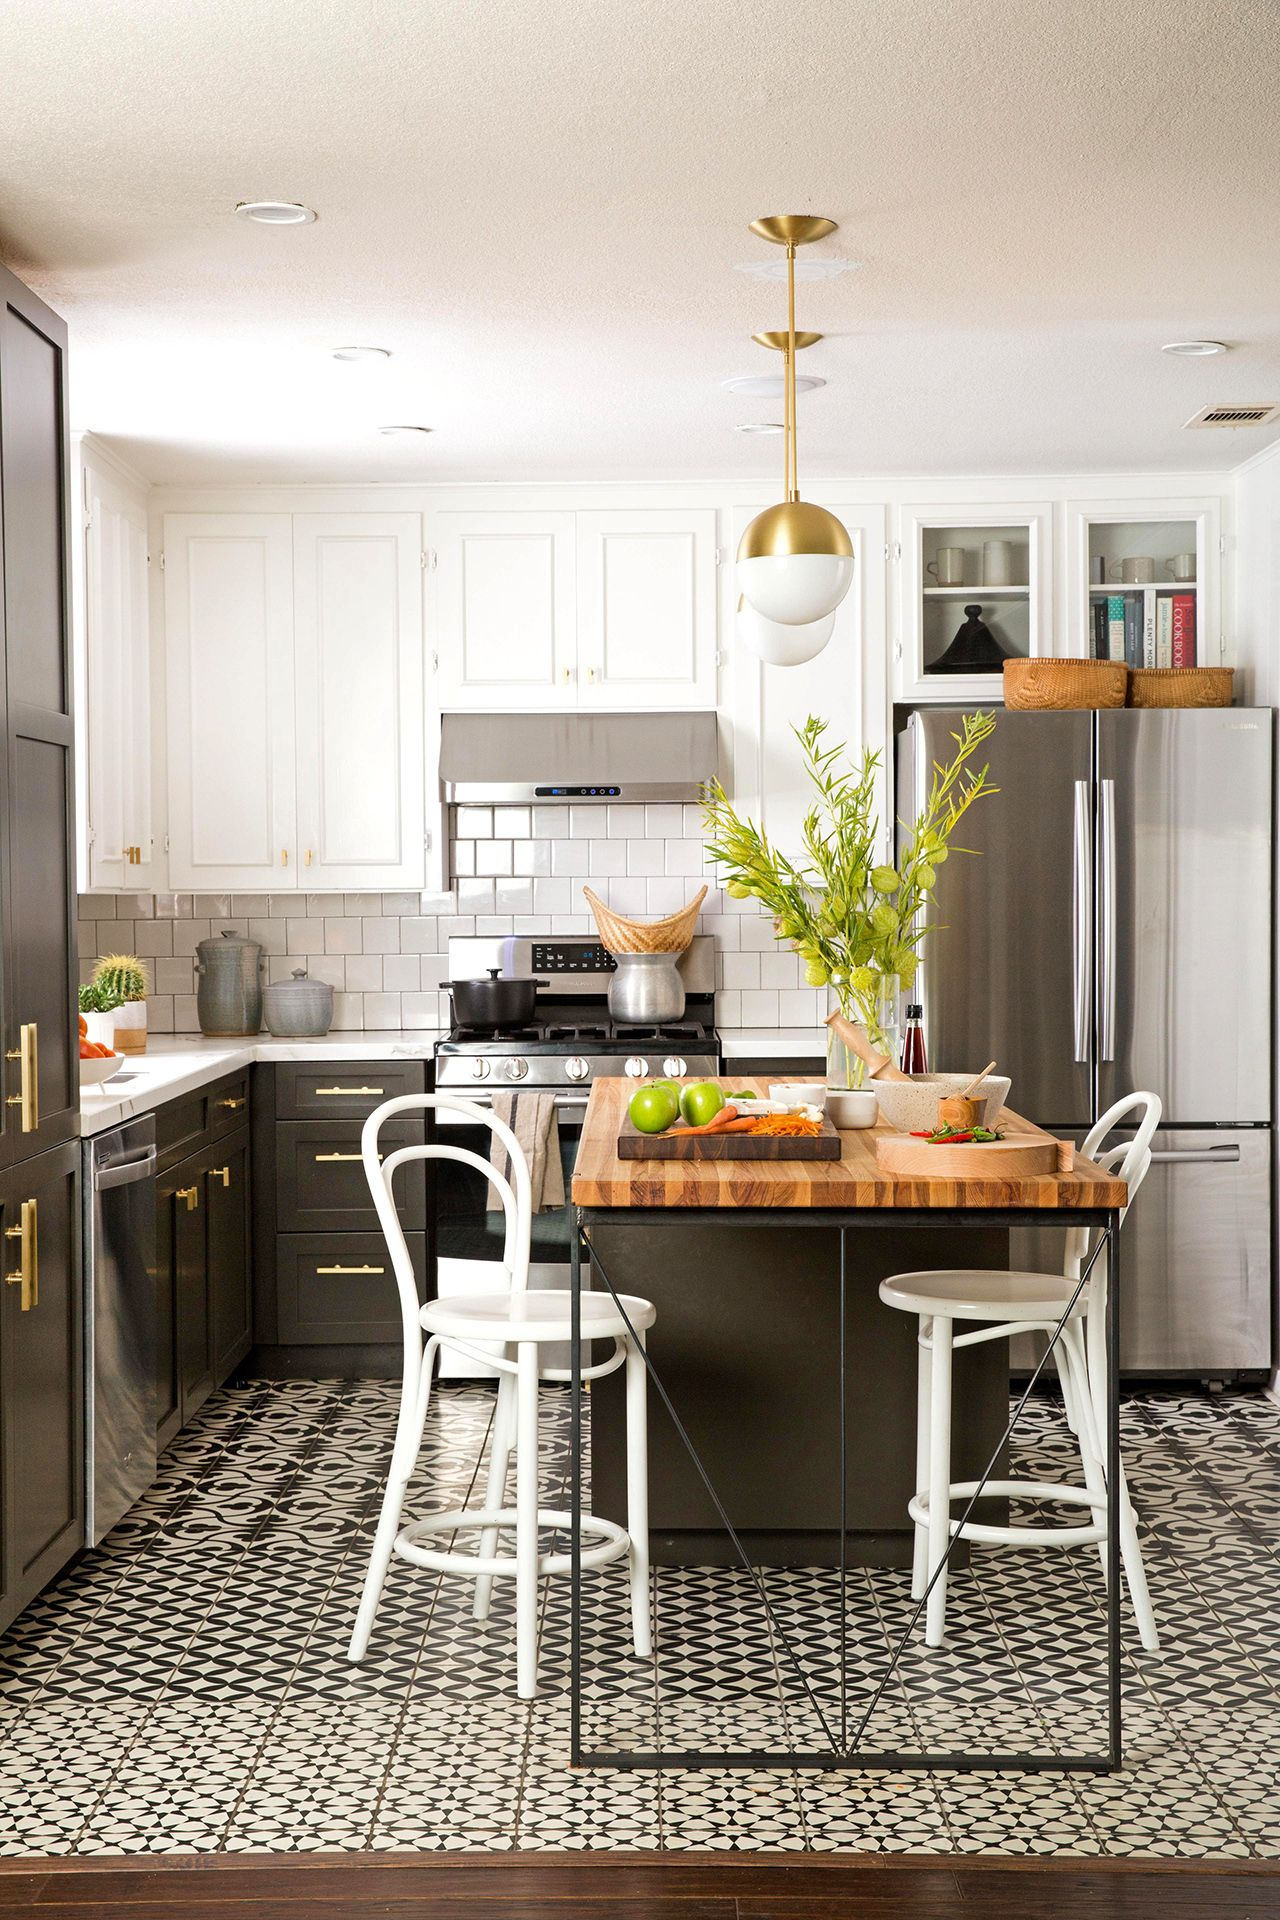 22 Kitchen Cabinetry Trends You Ll Love For Years To Come In 2020 Kitchen Cleaning Checklist House Cleaning Tips Clean Kitchen